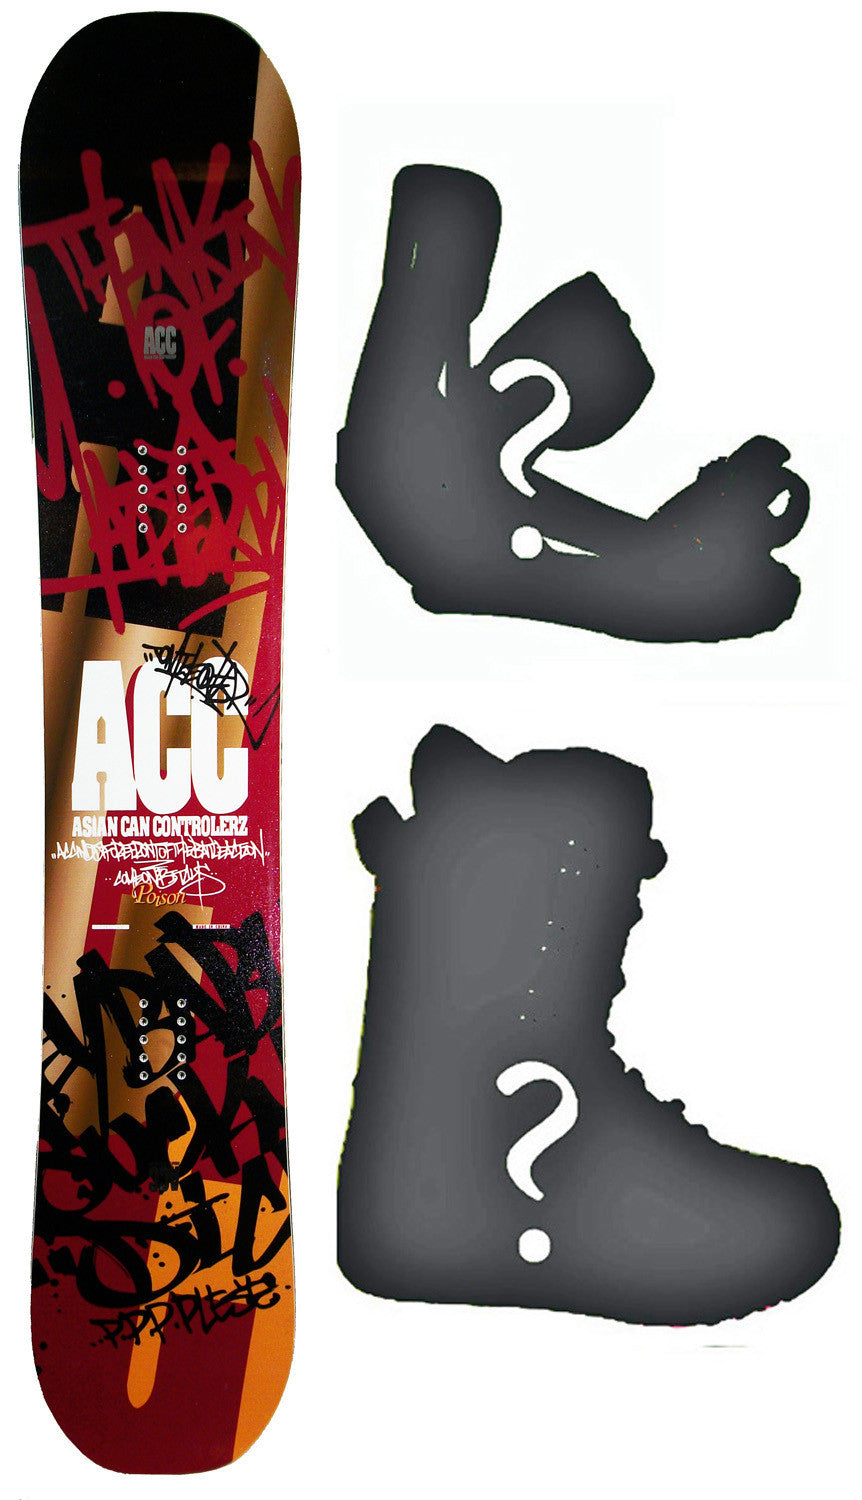 152cm Asian Can Controlerz Poison W-Rocker Snowboard, Build a Package with Boots and Bindings